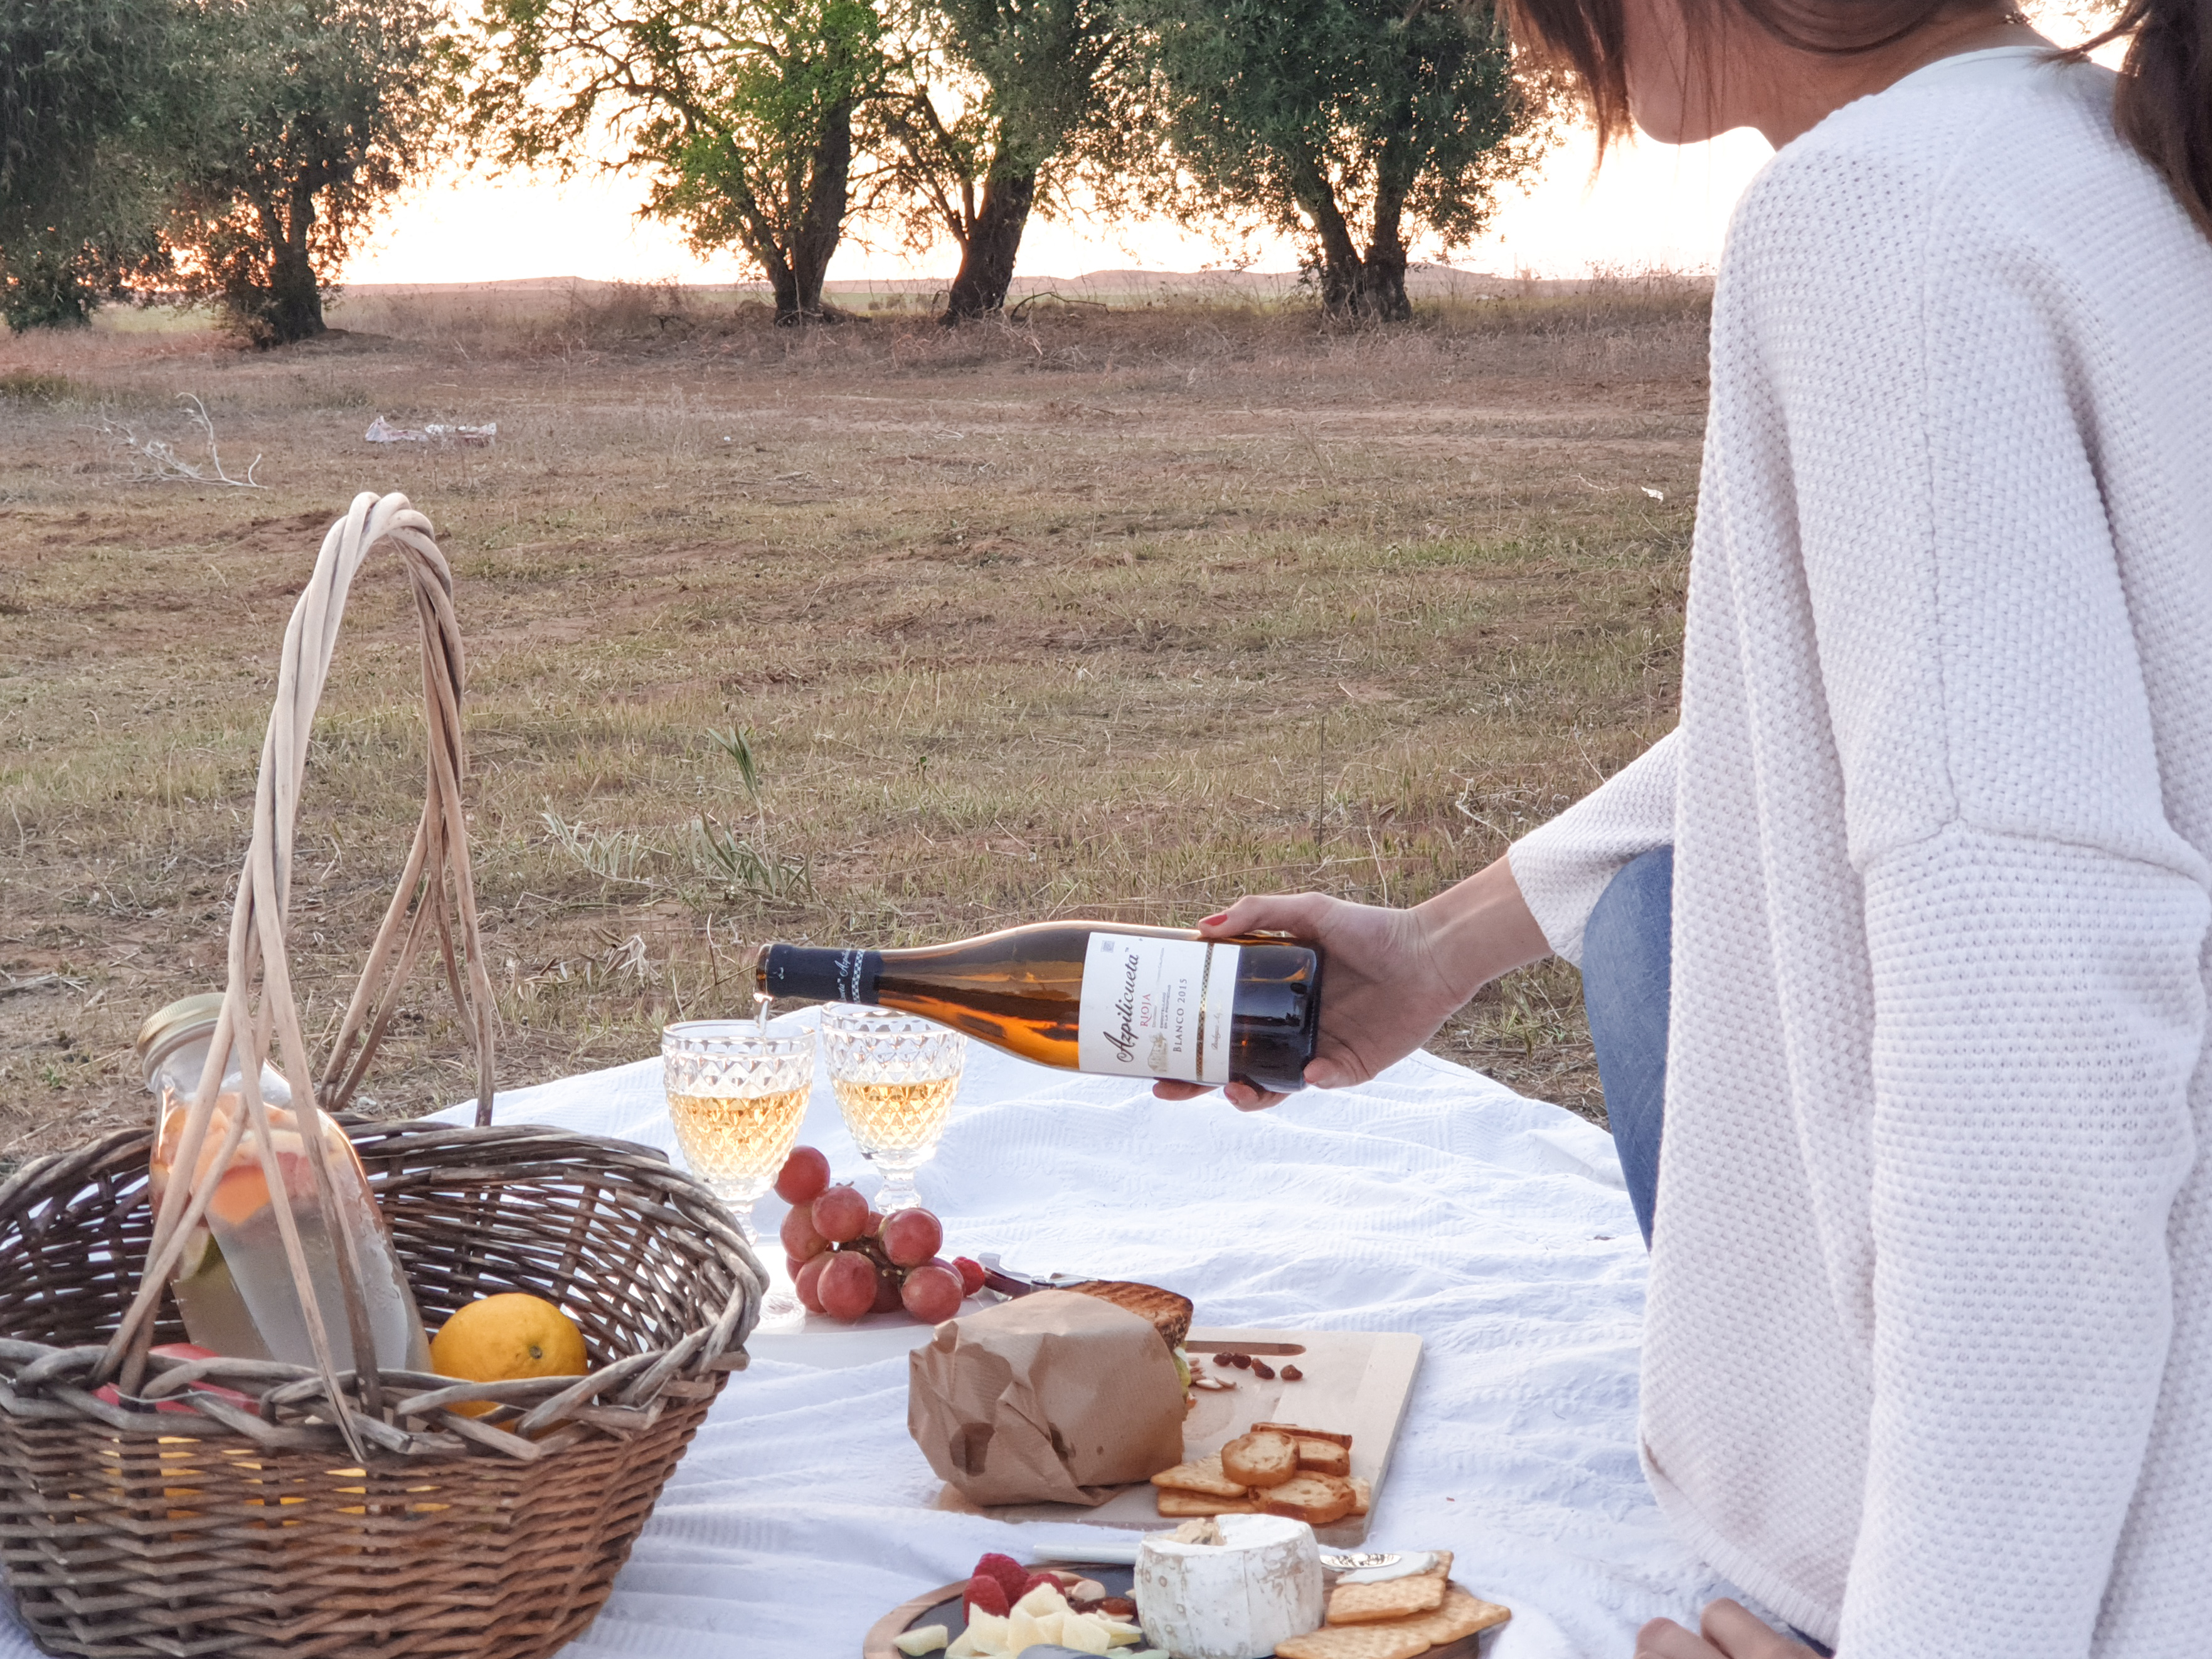 Ingredients for a picnic day